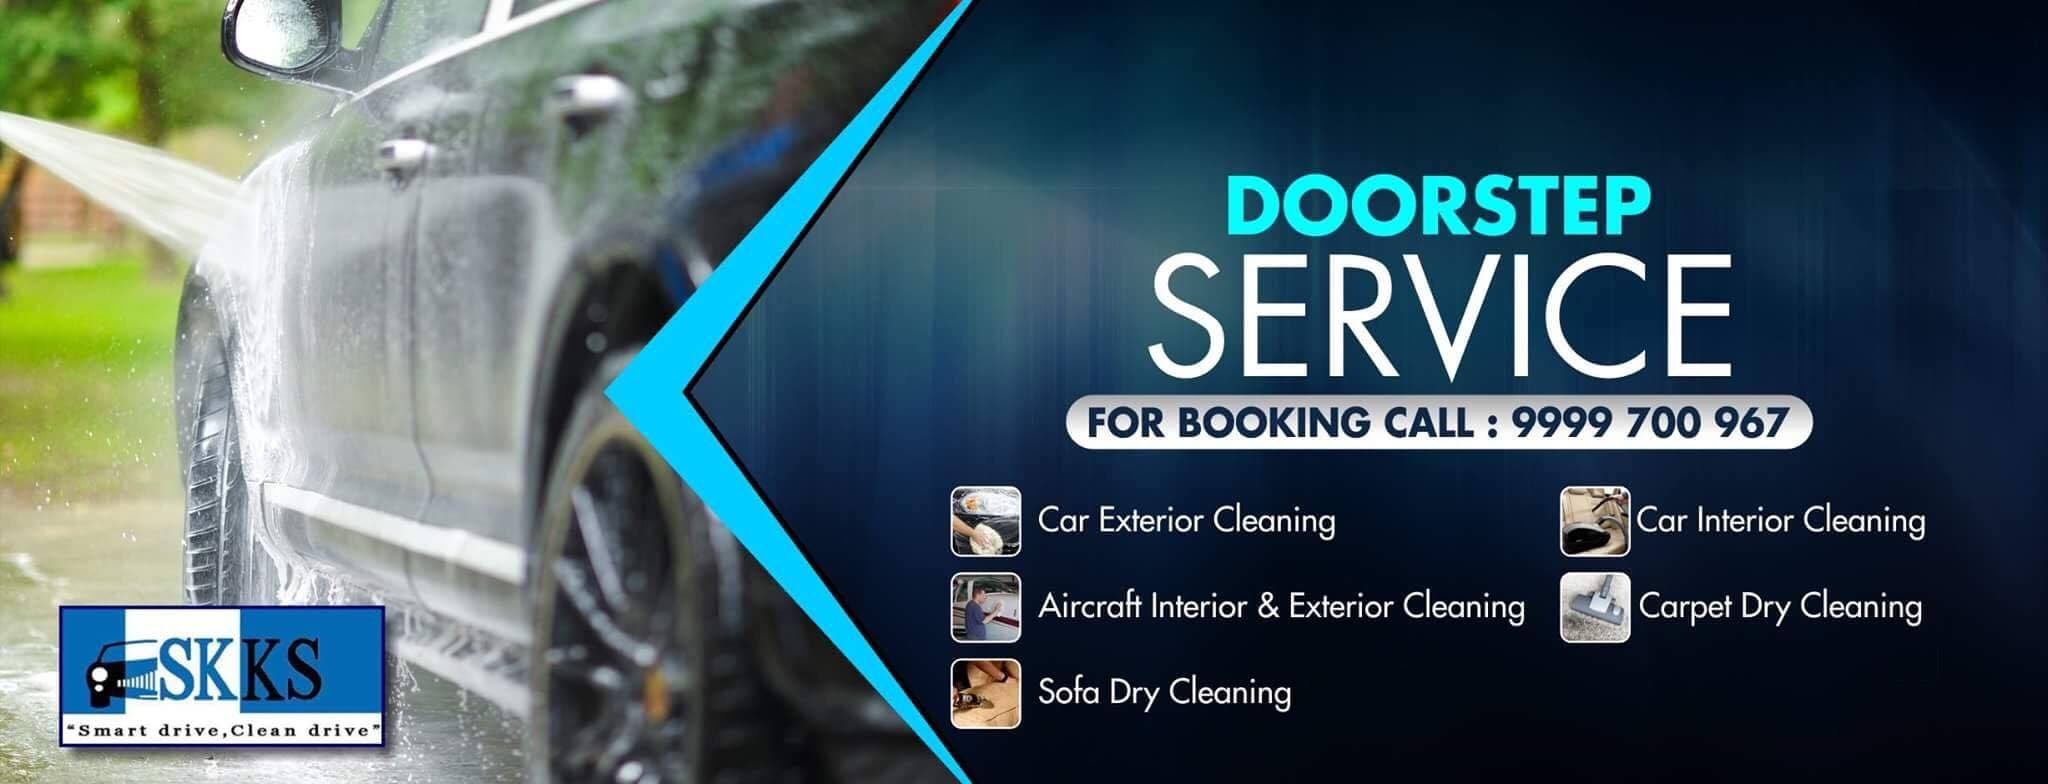 Top 10 Car Cleaning Services in Lahore Gate, Delhi - Best